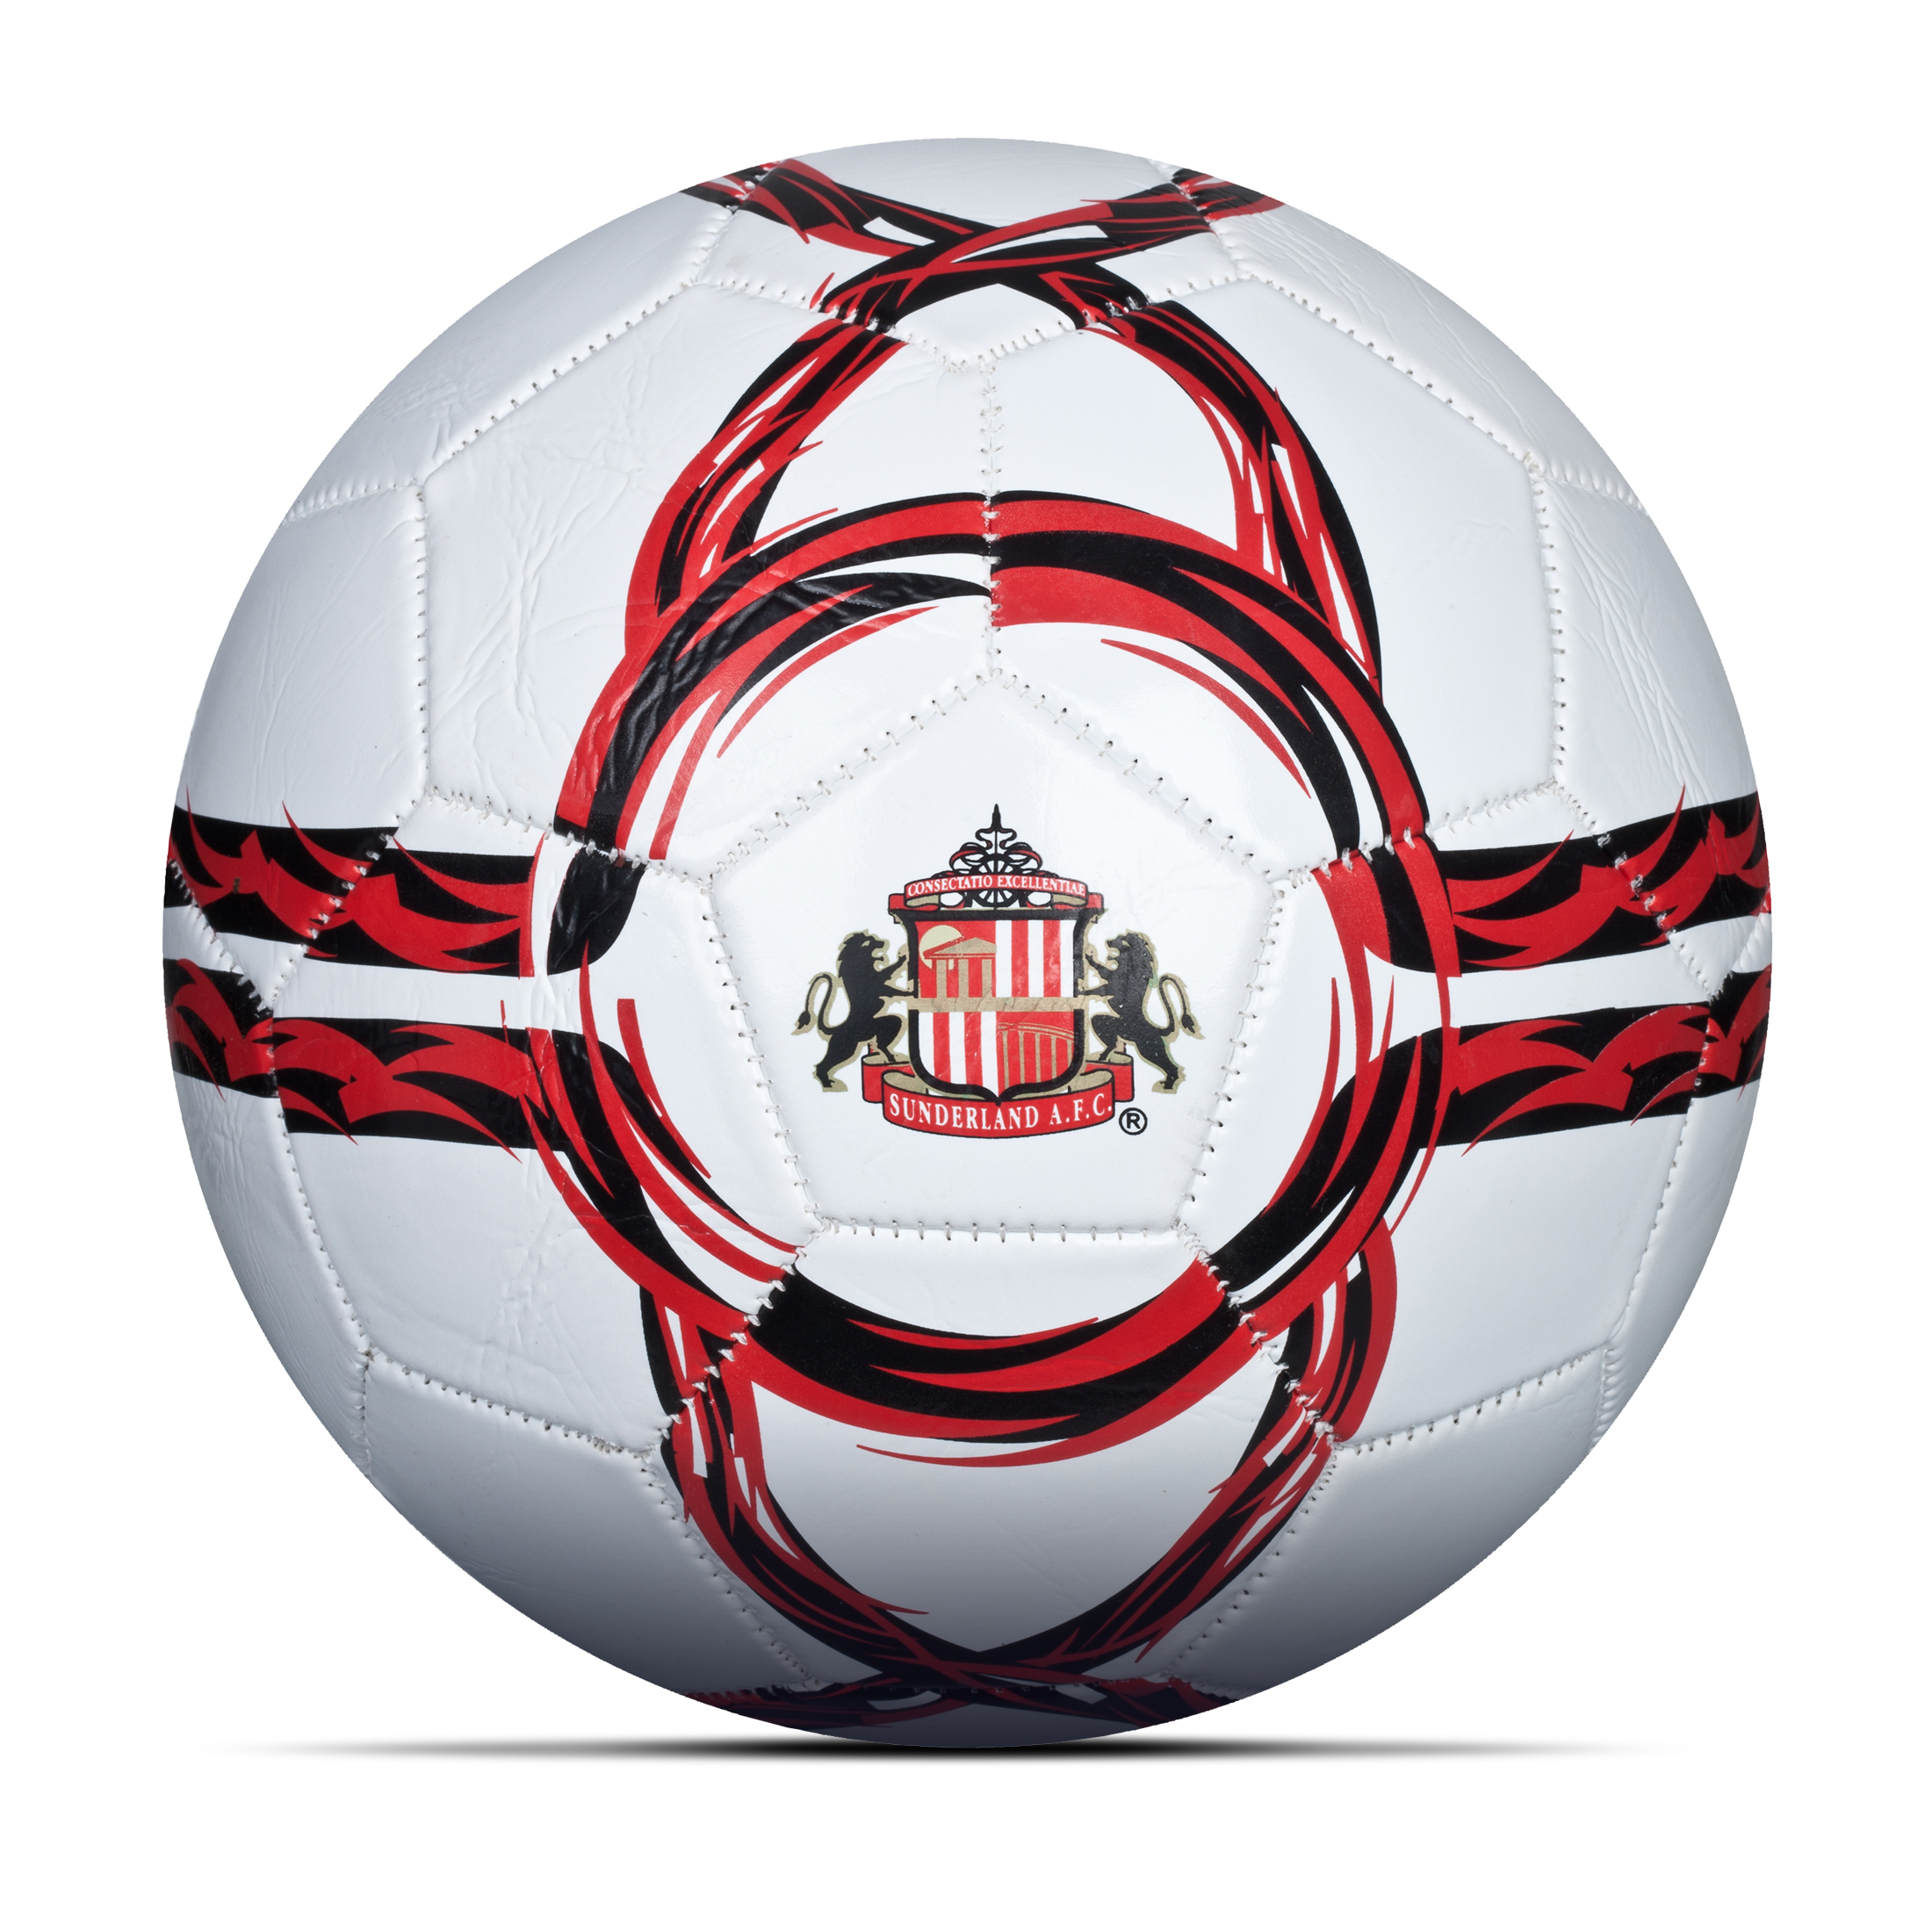 Sunderland Core Football - Size 5 - White/Red